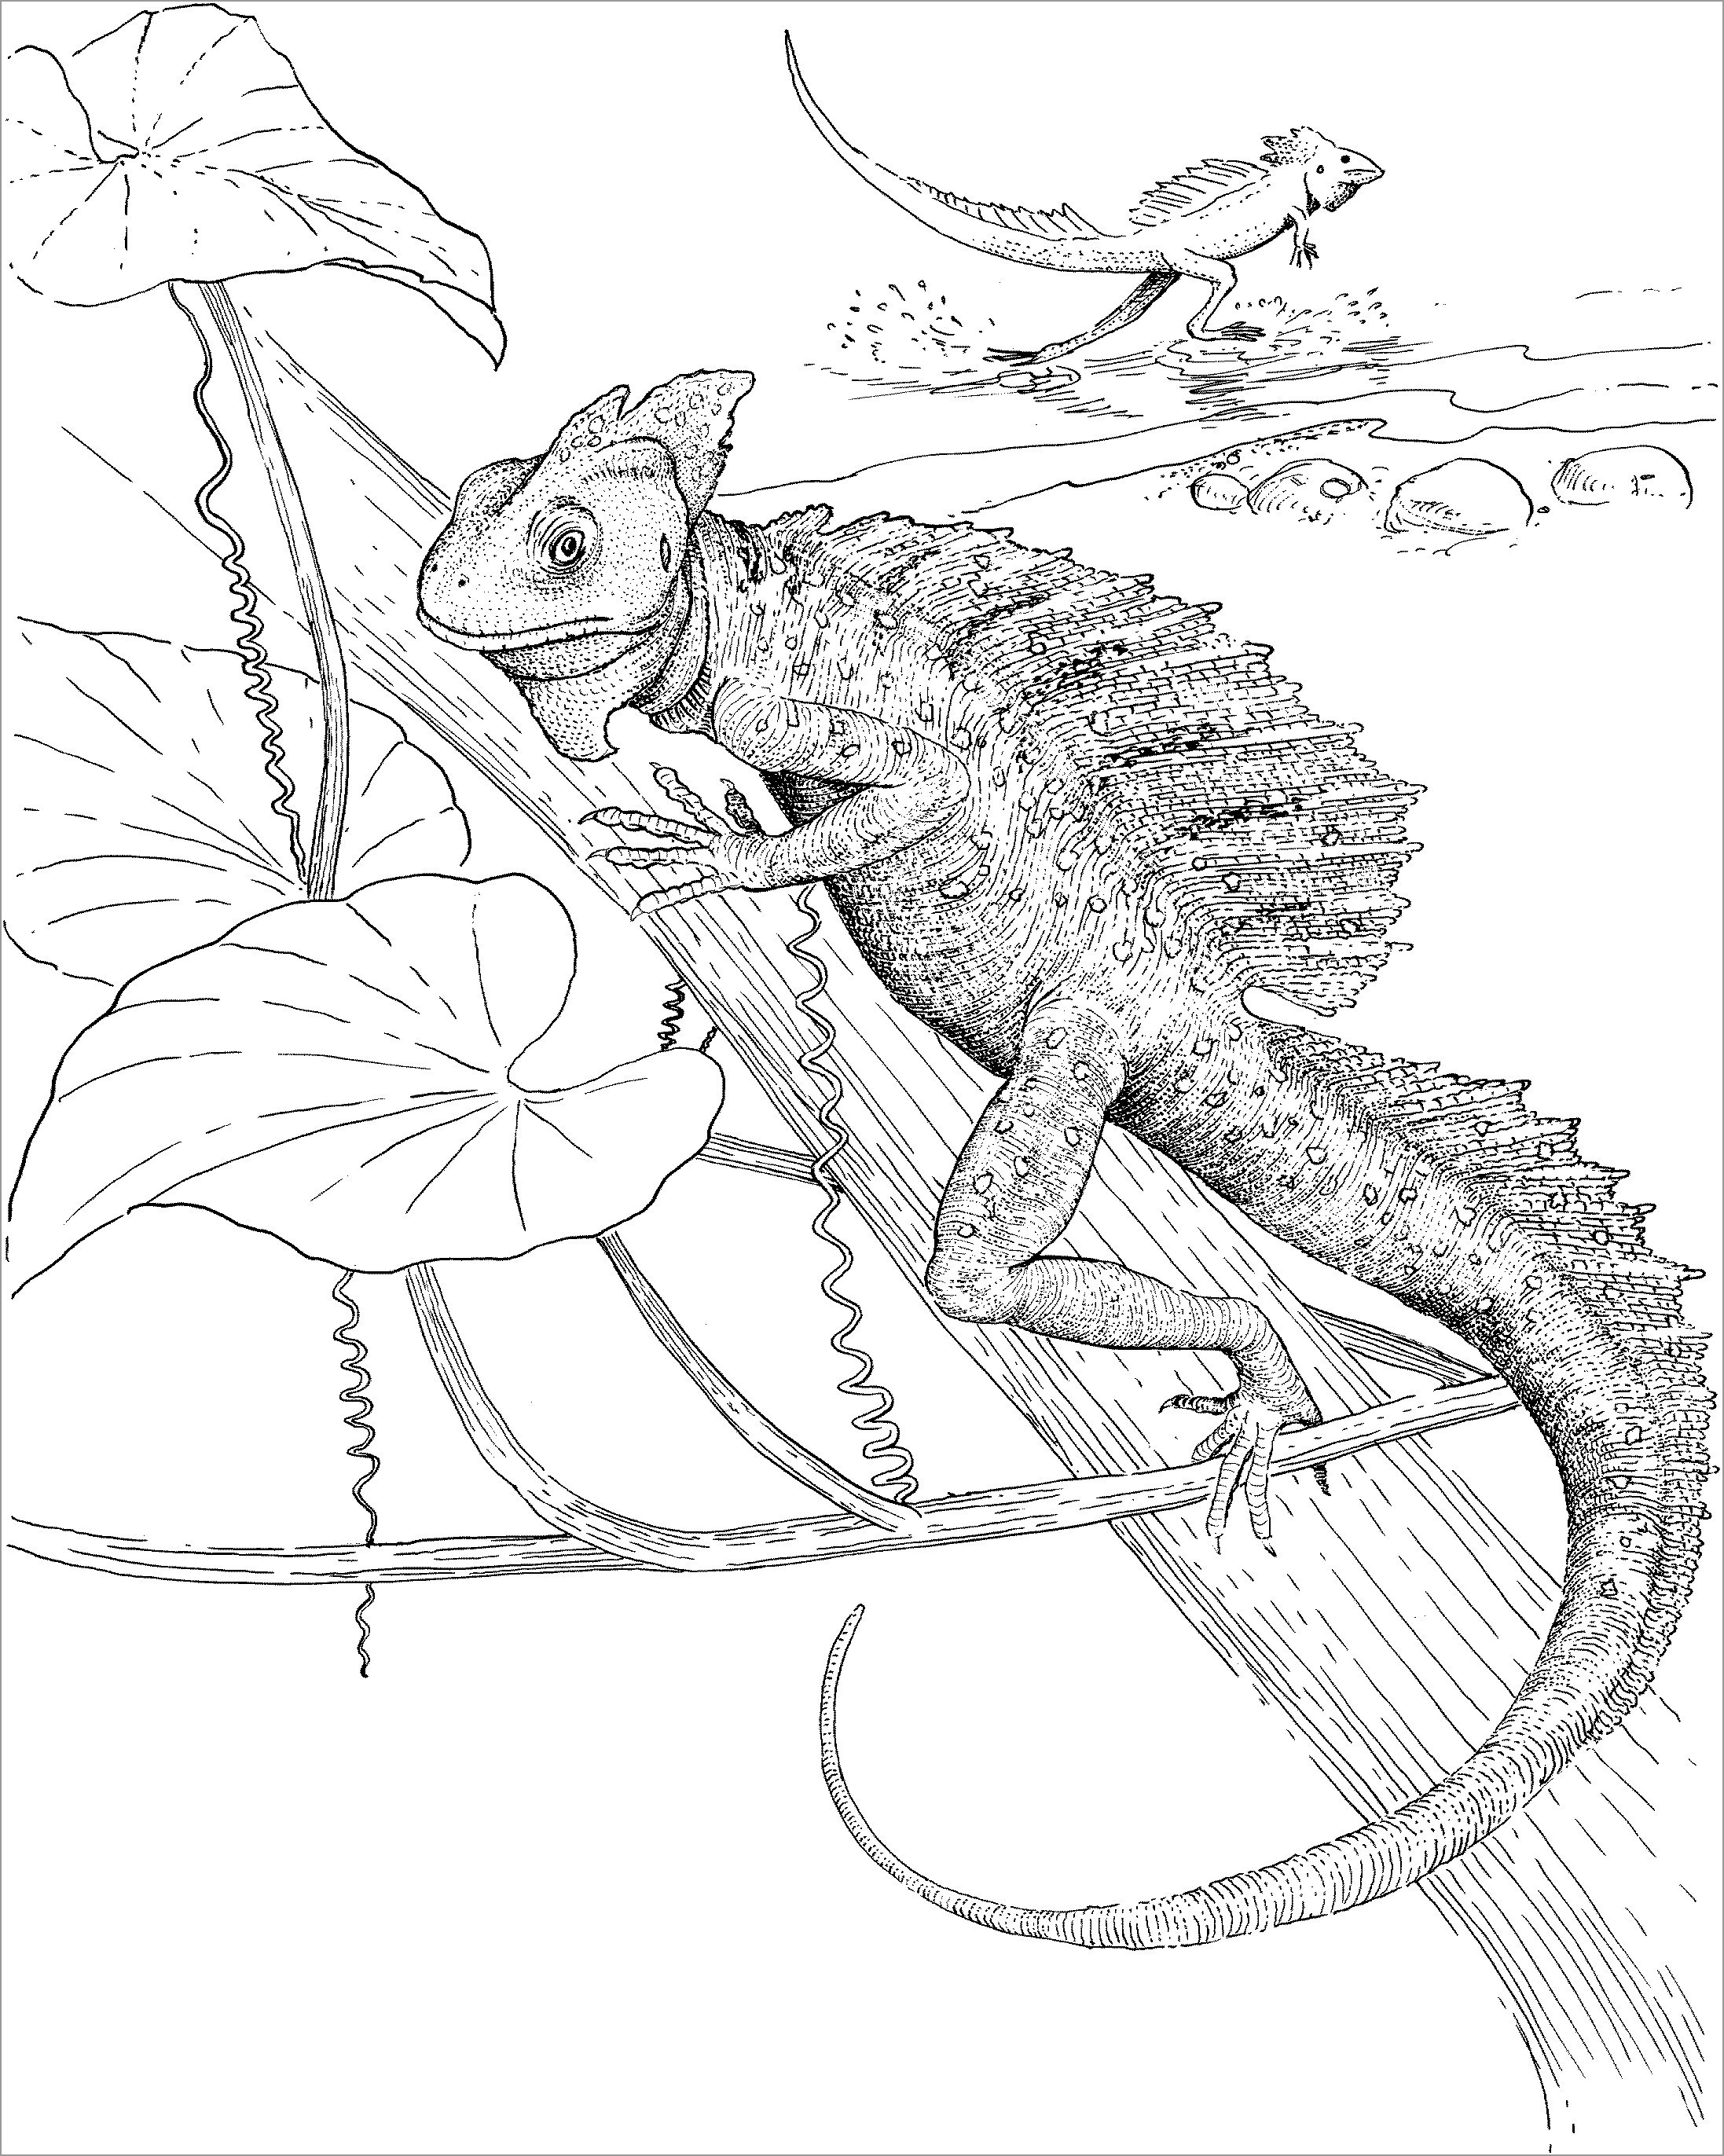 lizard picture to color free lizard coloring pages lizard to color picture